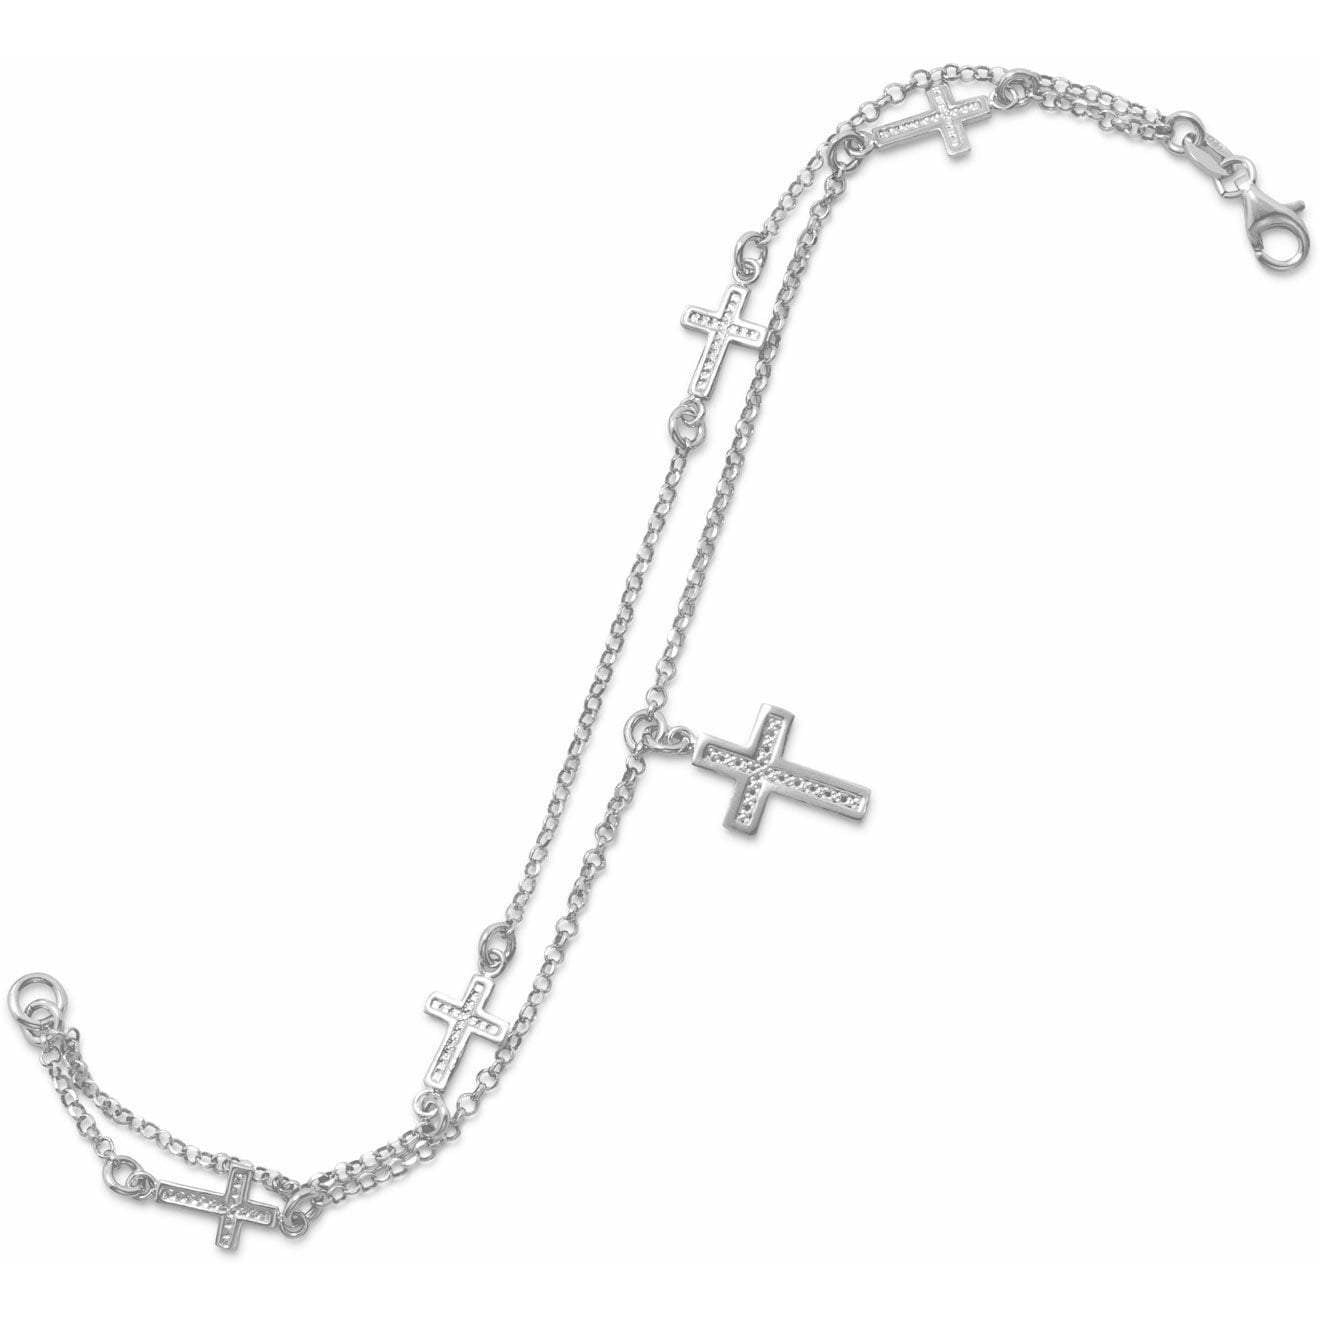 Rhodium Plated Double Strand Cross Charm Bracelet